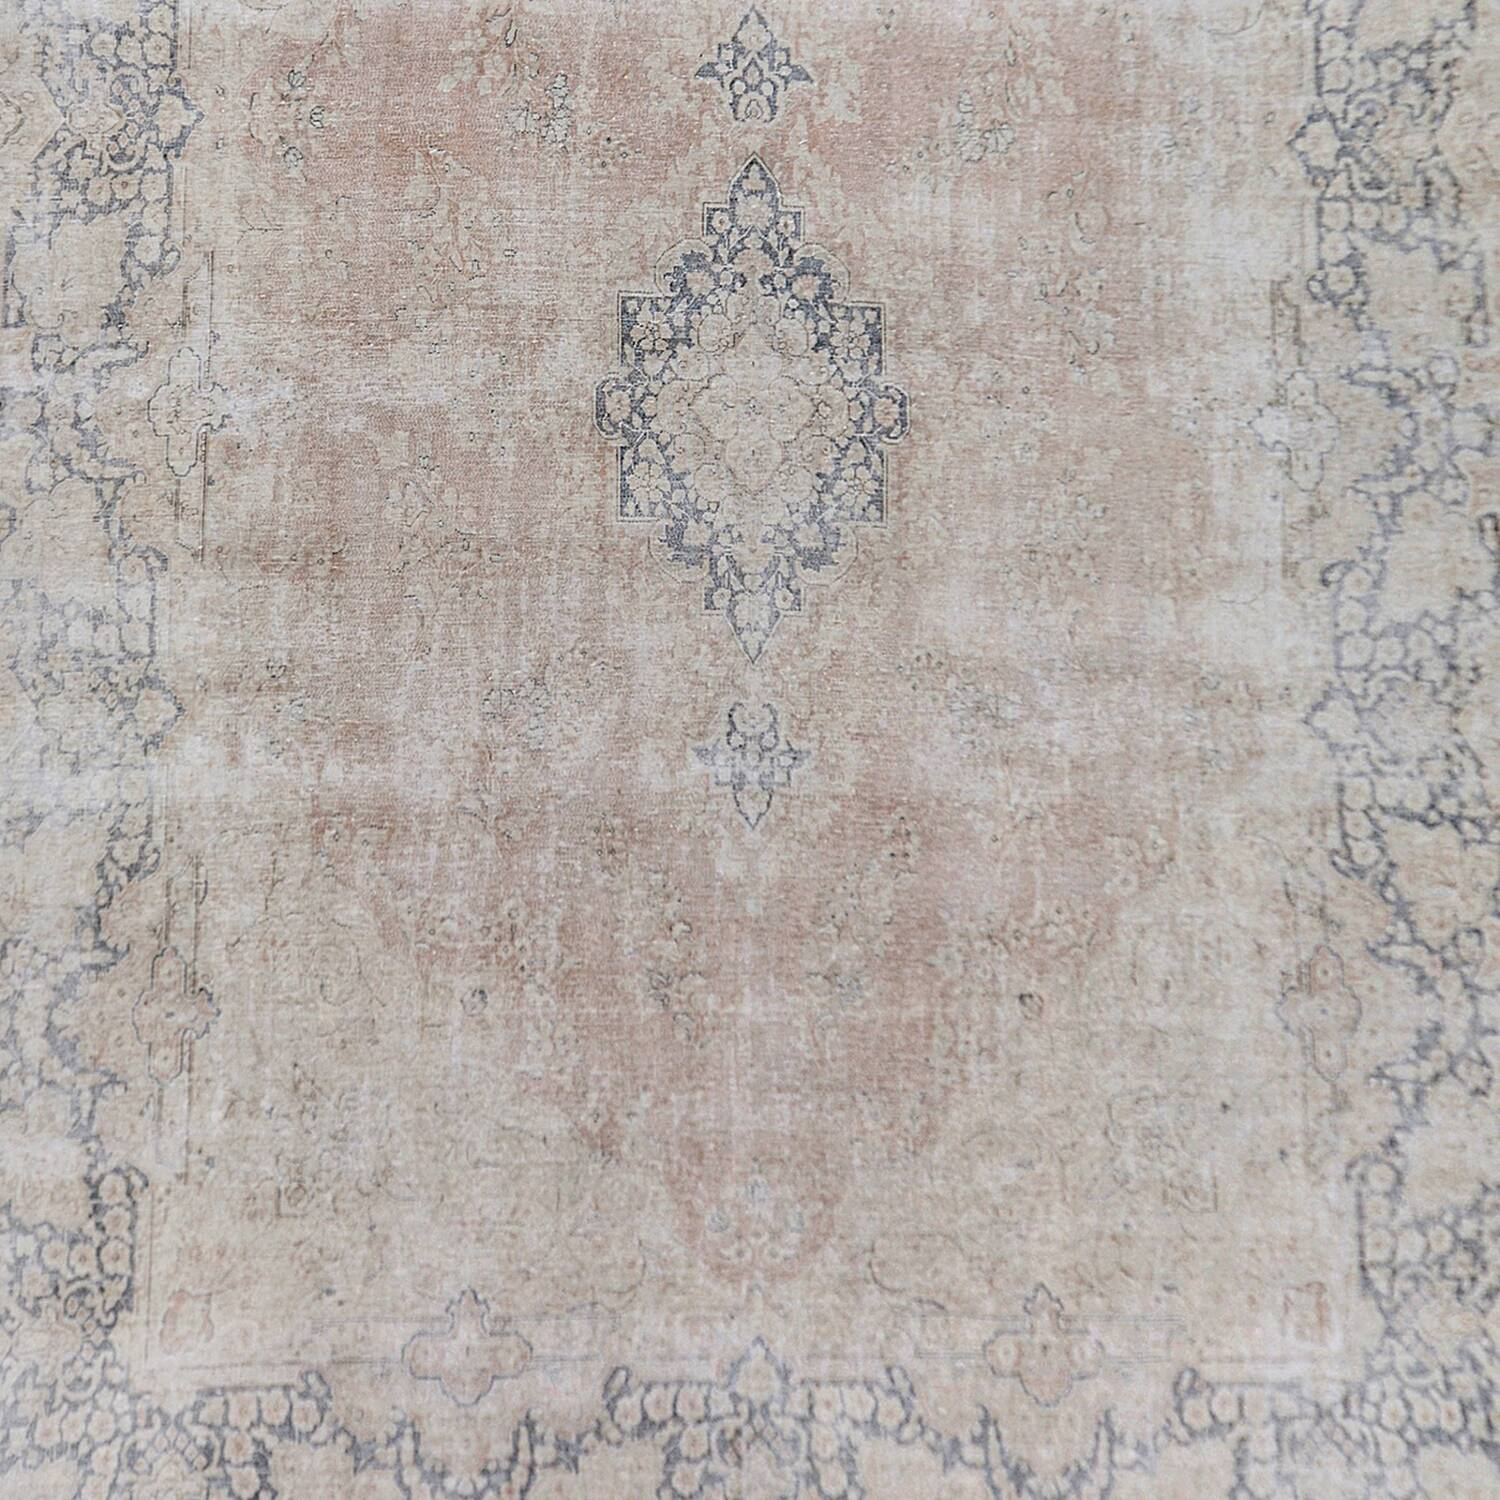 Antique Distressed Floral Kerman Persian Muted Area Rug 10x13 image 3